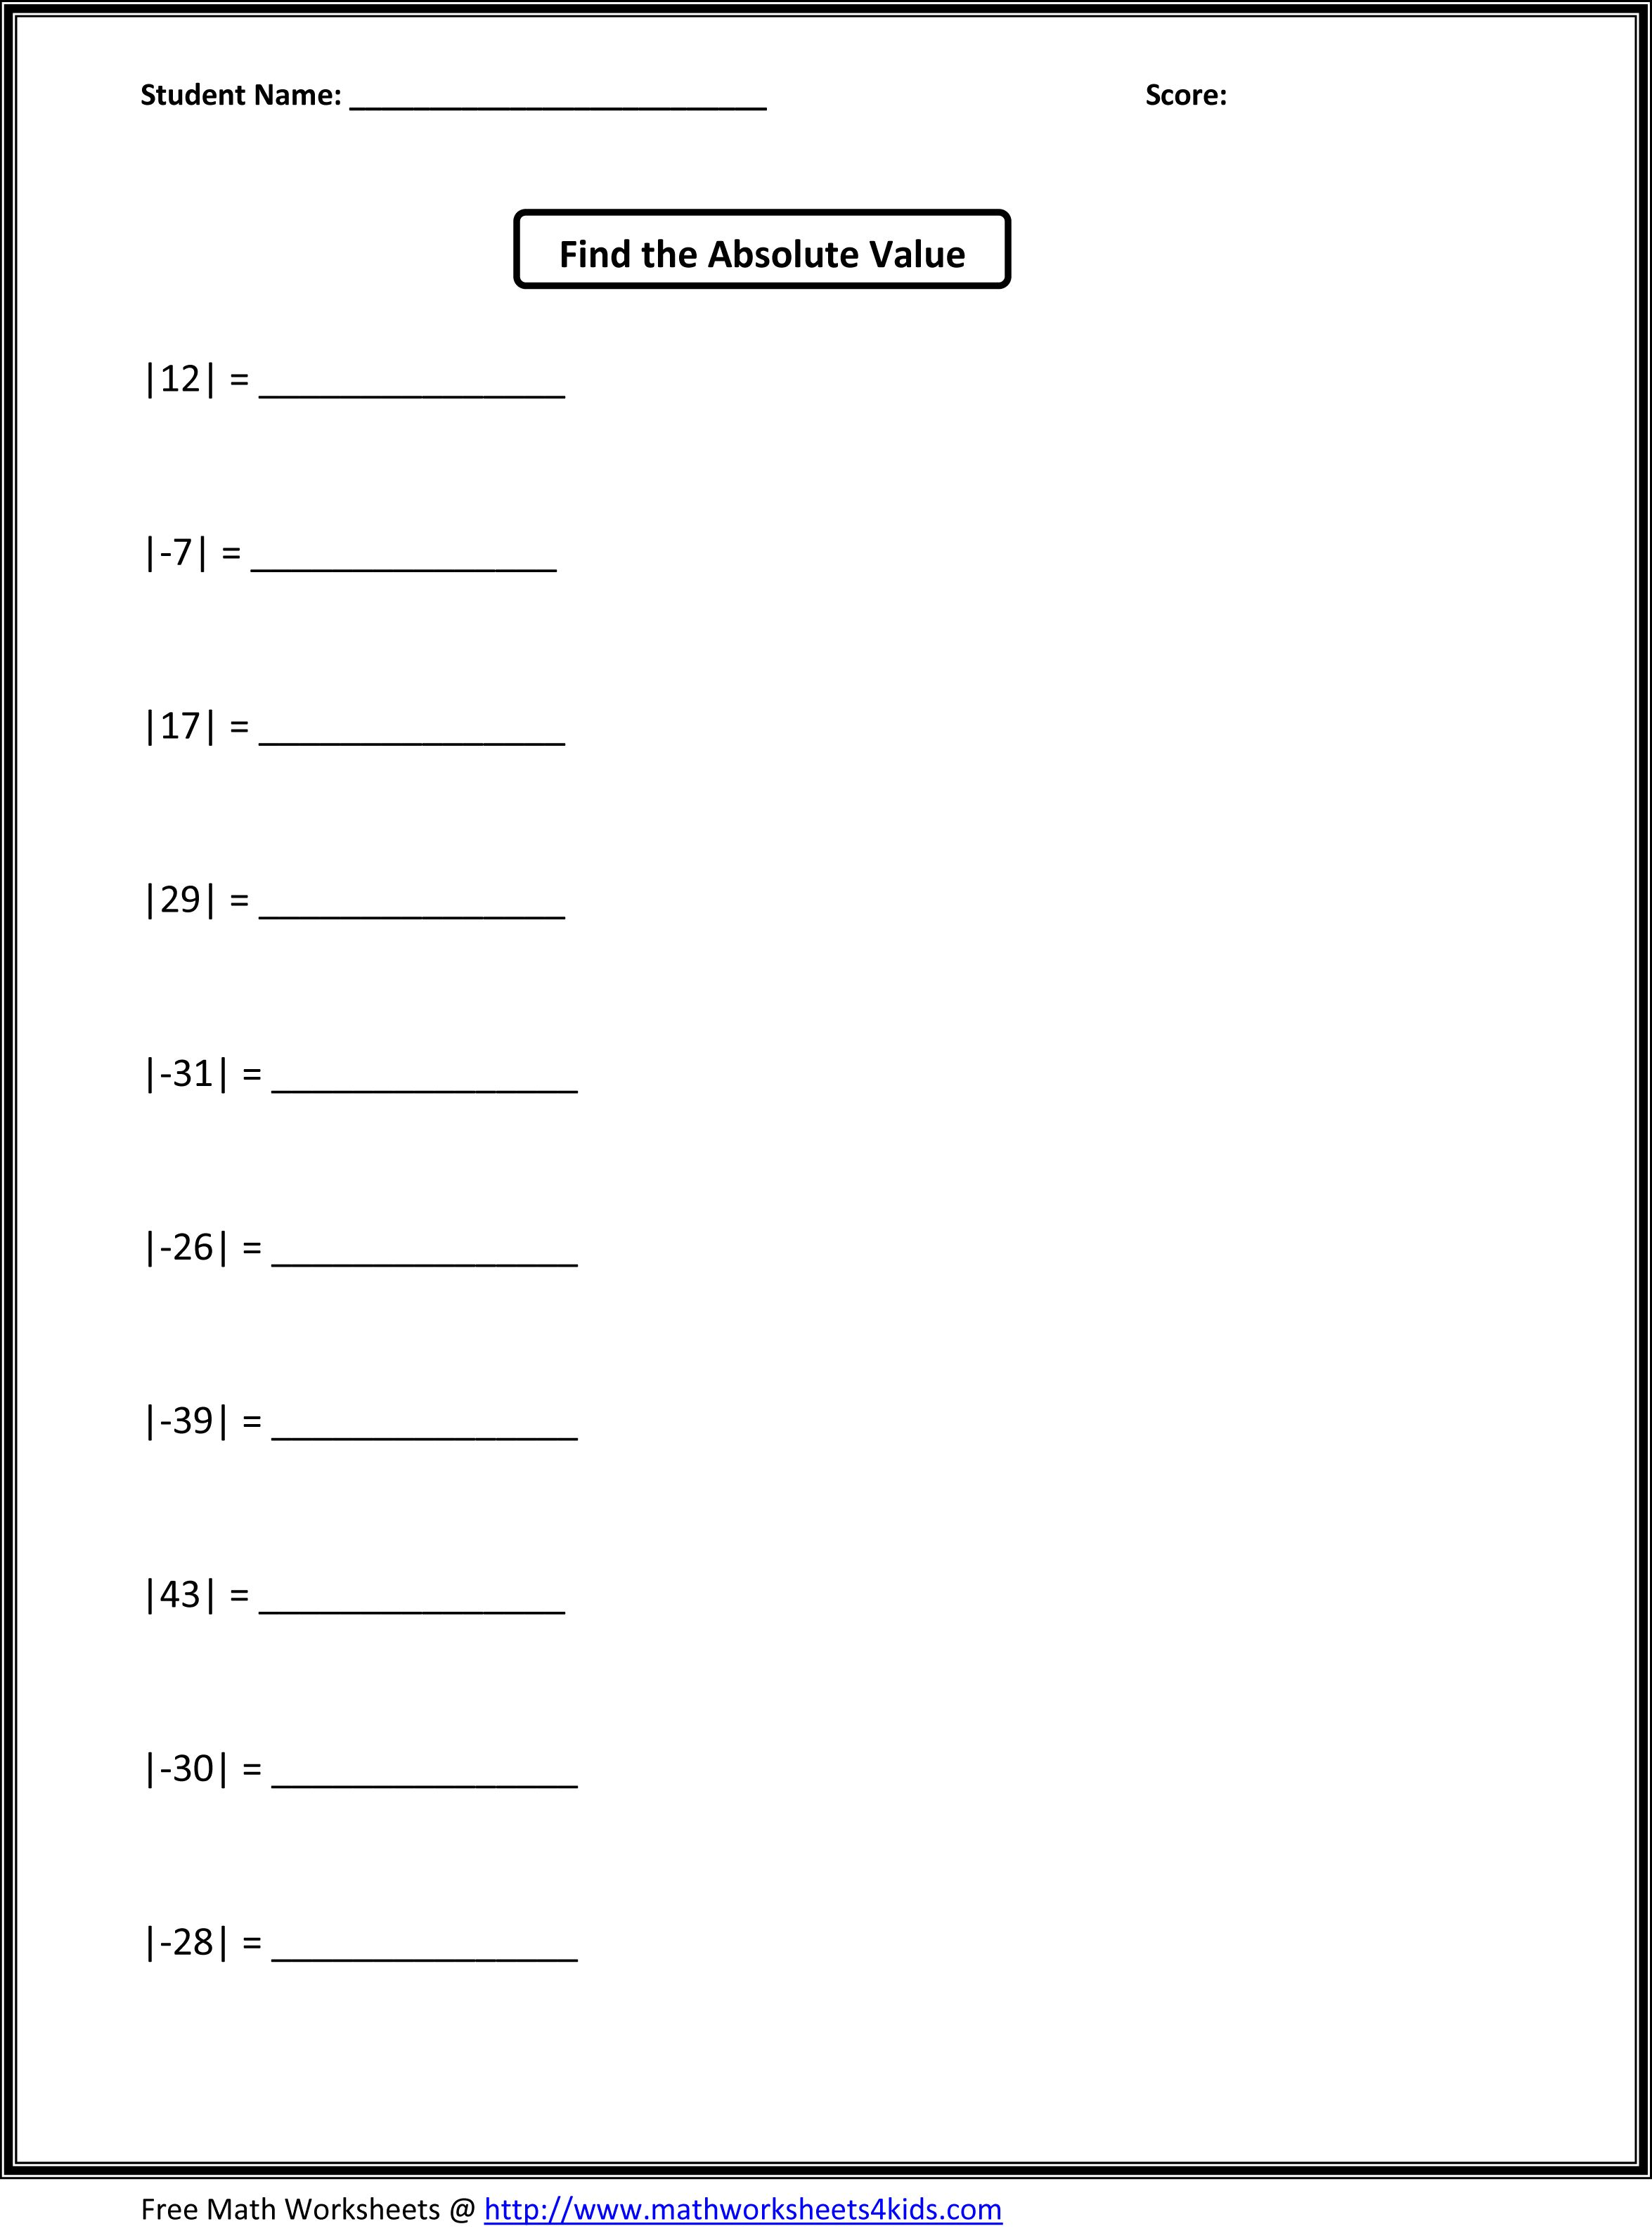 hight resolution of Fifth Grade Math Worksheets   Free math worksheets